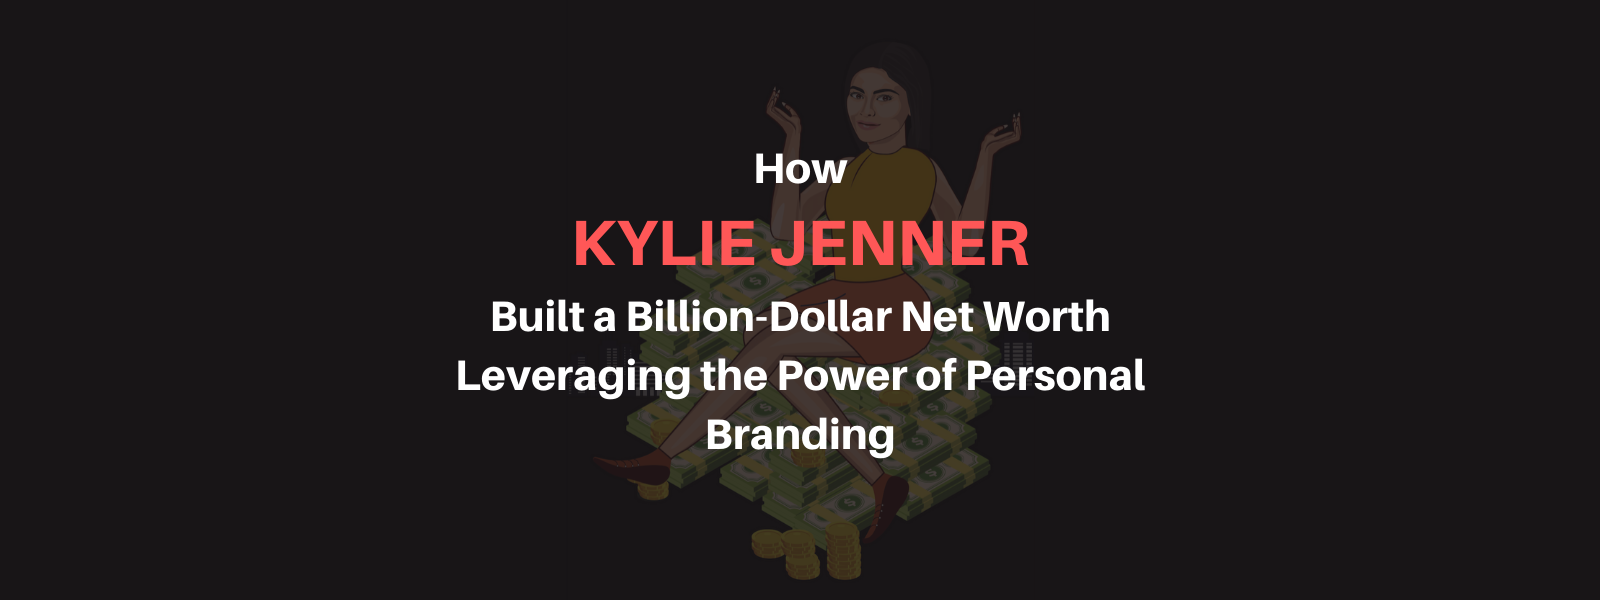 Kylie Jenner infographic